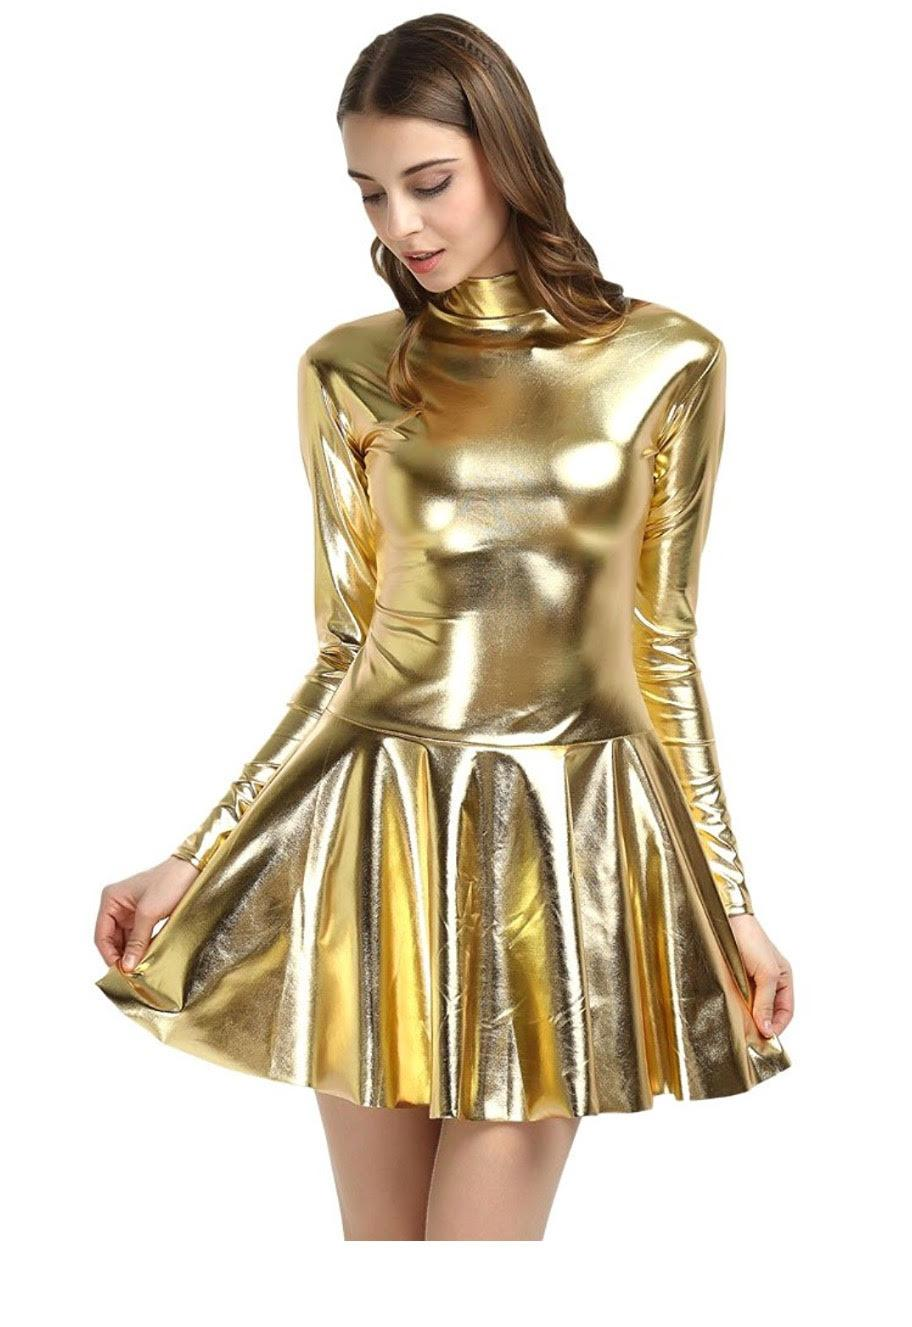 Gold Metallic Dress #21281026 - Casual Dresses (Short)